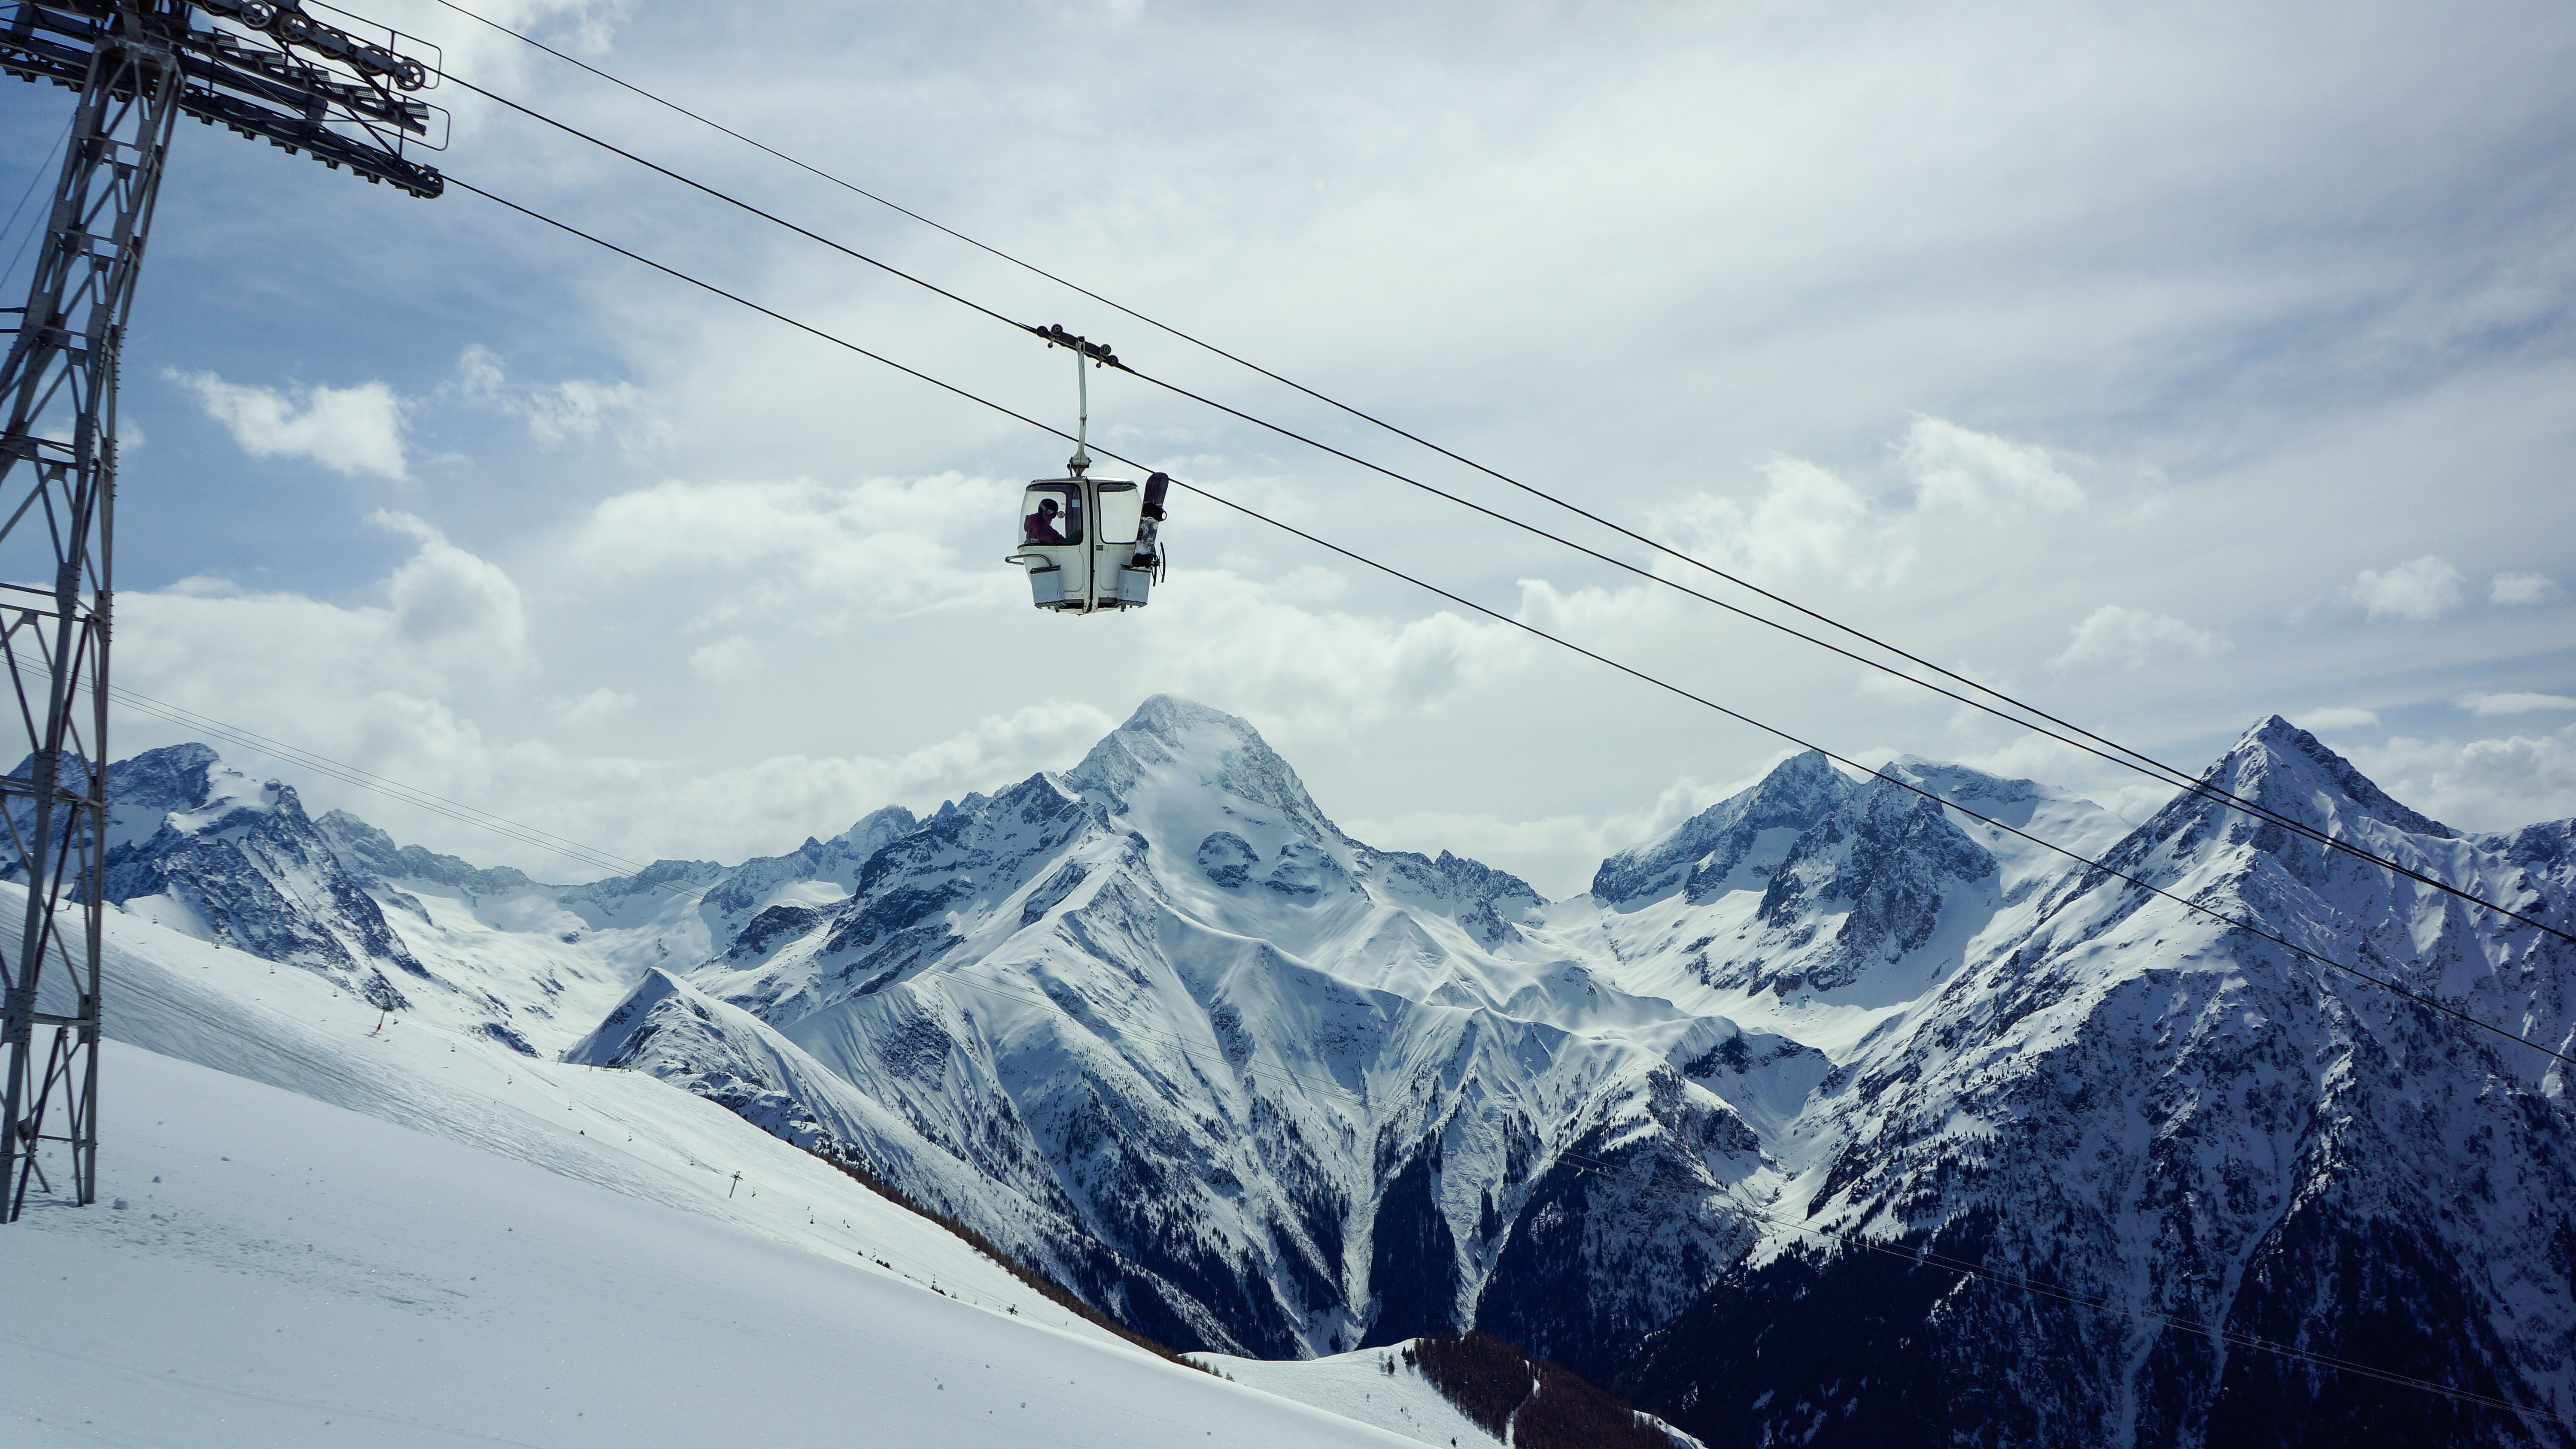 A white chairlift going up with big mountain peaks in foreground